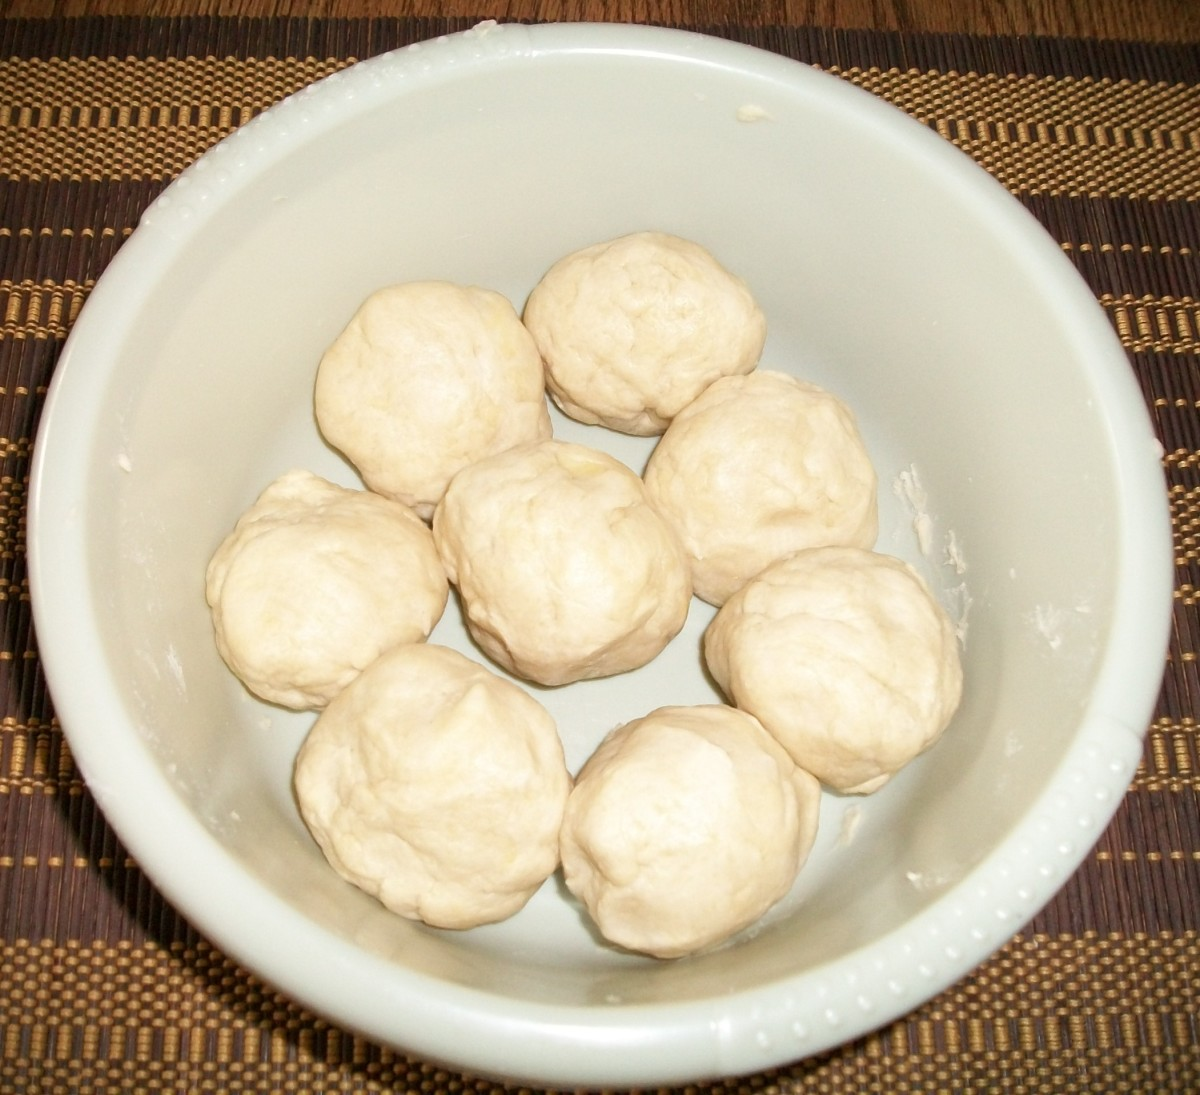 Knead the dough until elastic and divide into 8 balls.